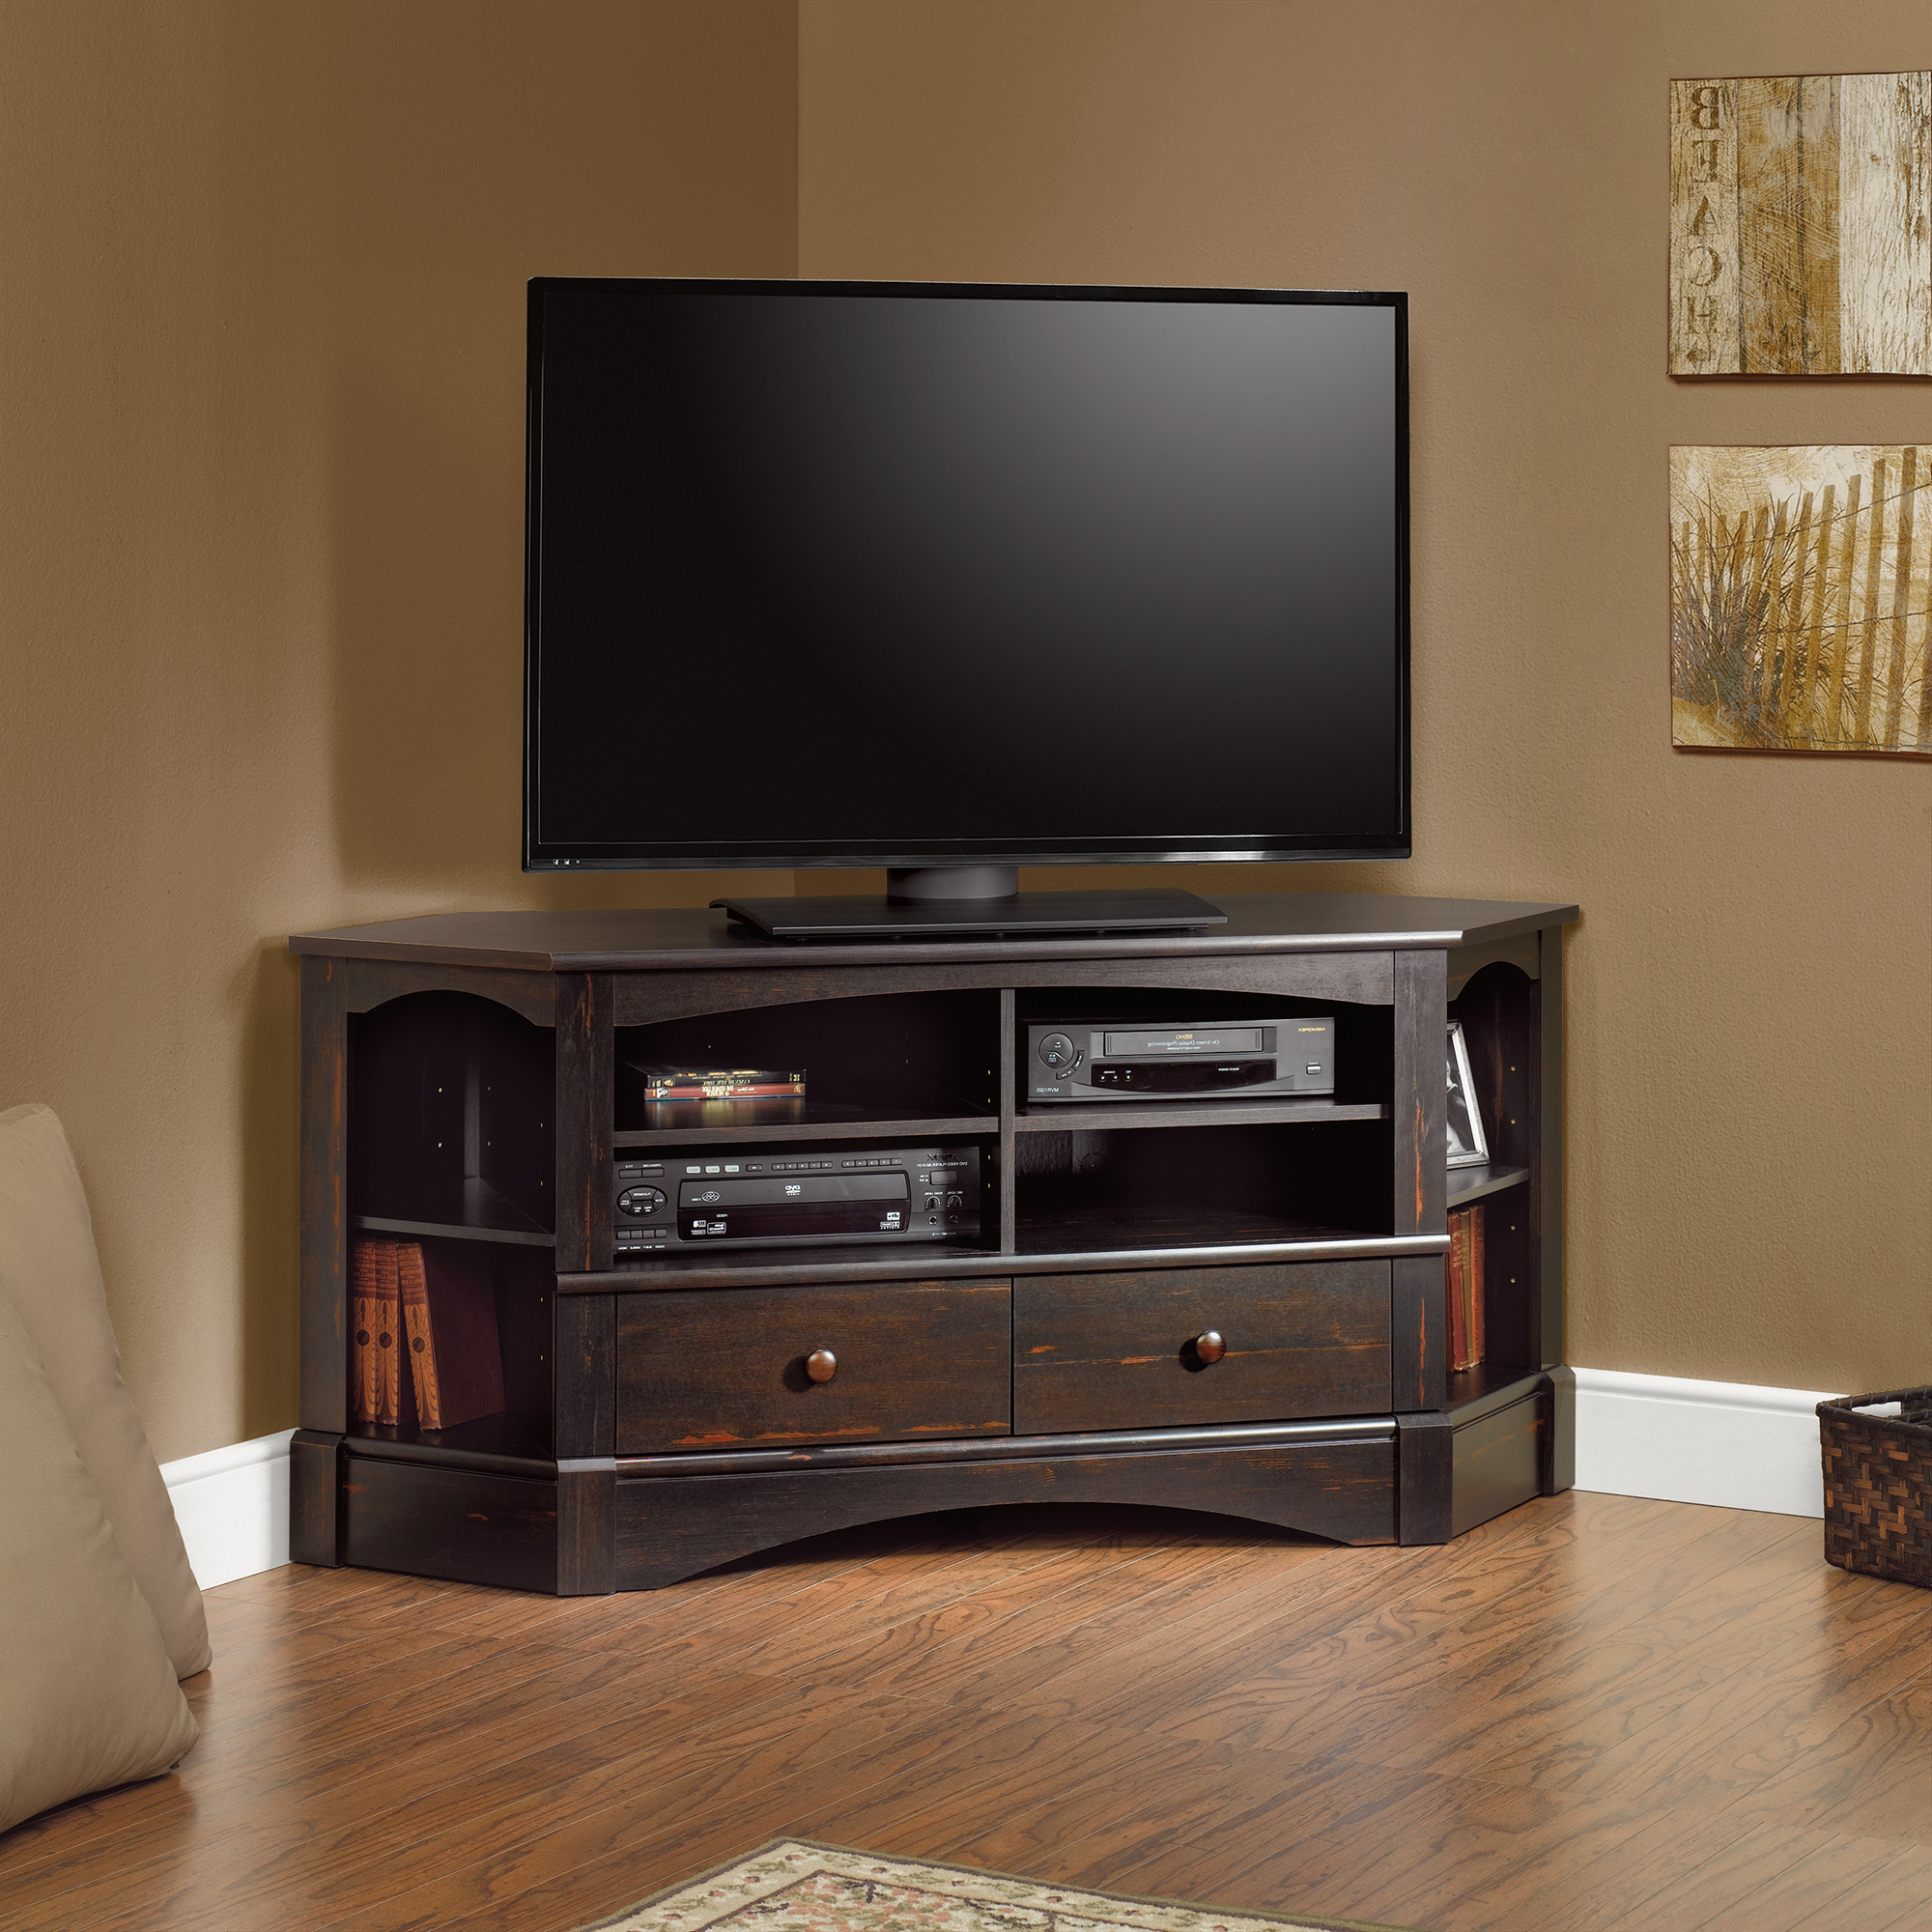 Sauder Intended For Corner Tv Stands (View 17 of 20)